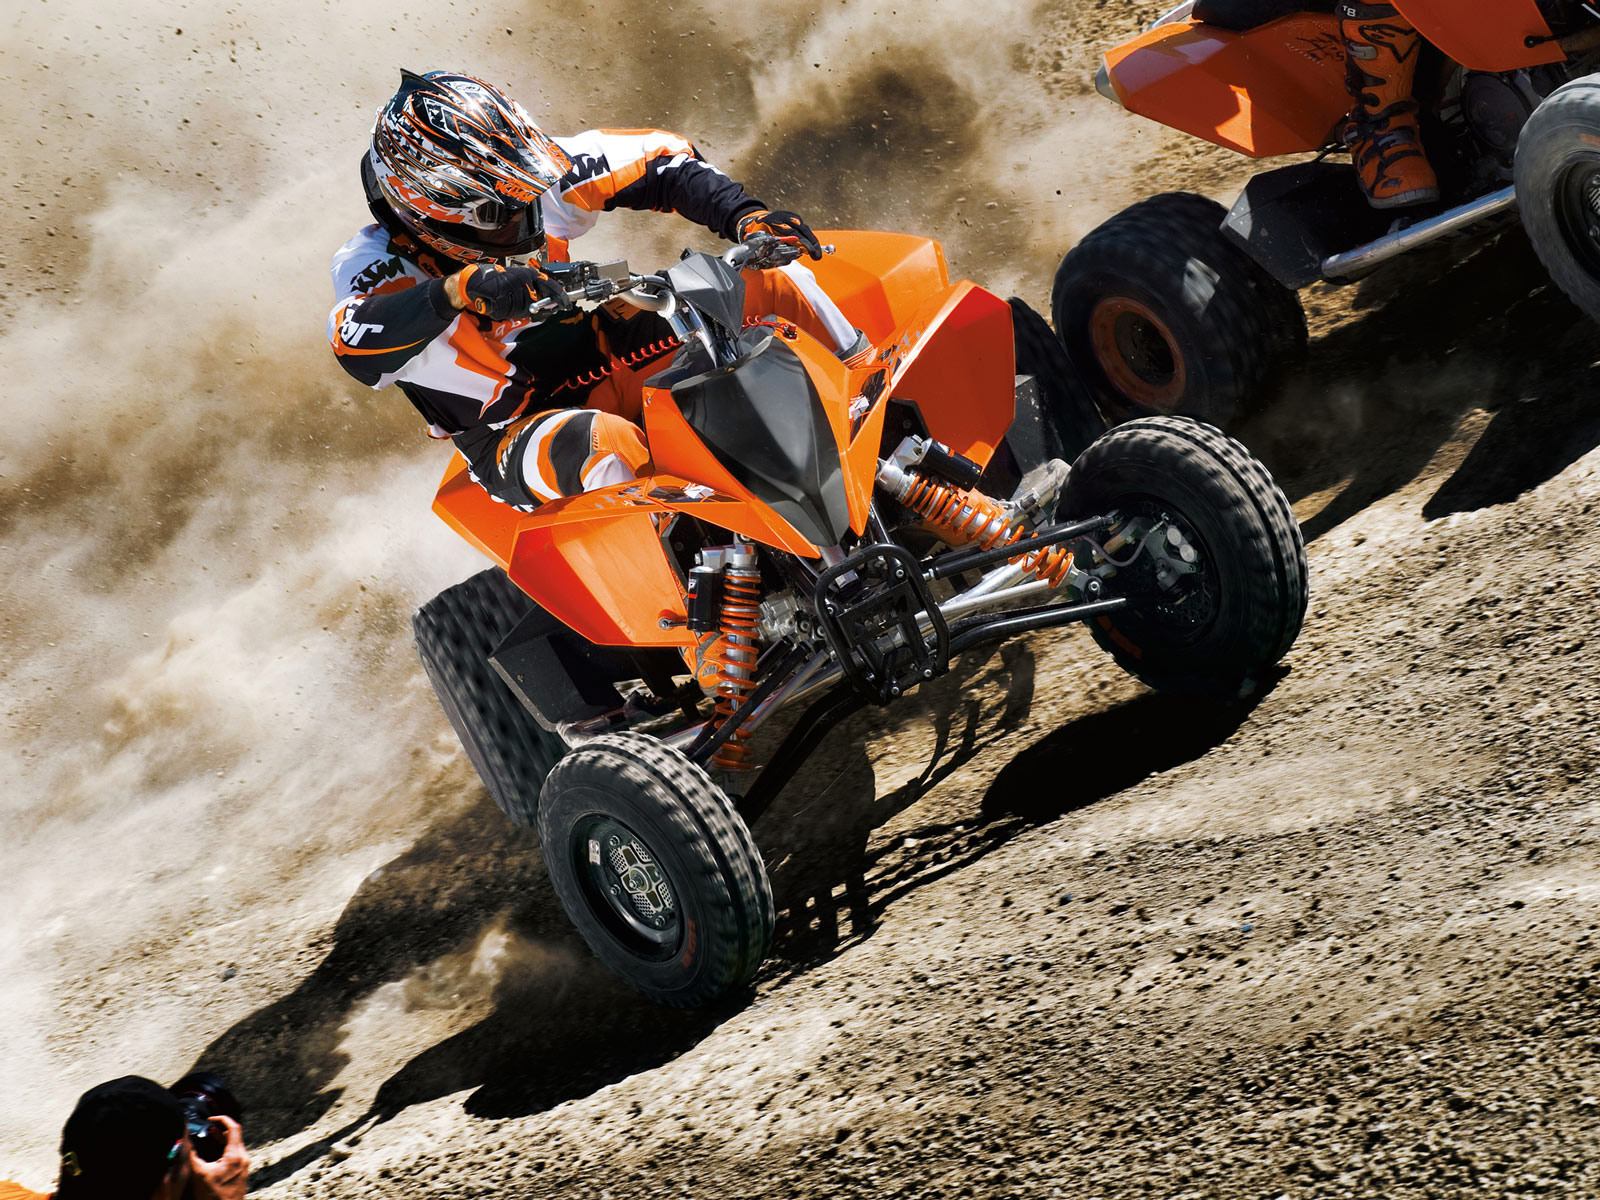 http://4.bp.blogspot.com/-3Finaanp1y4/TqnkFx96R5I/AAAAAAAAGvk/g_IMb0Up_1o/s1600/2011_KTM_525-XC_atv-wallpapers_5.jpg